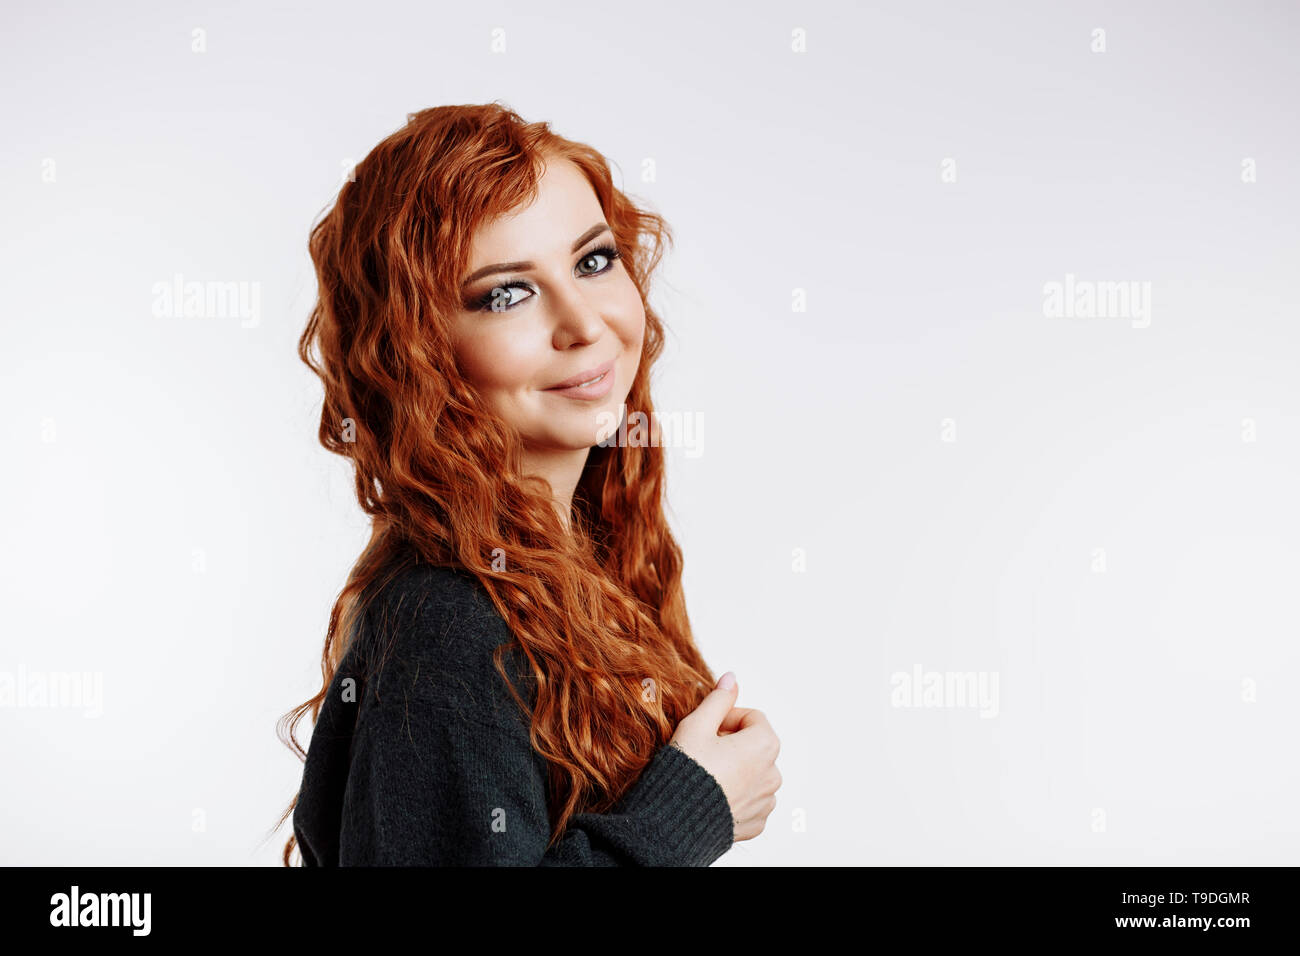 Redhead Girl Green Eyes High Resolution Stock Photography And Images Alamy